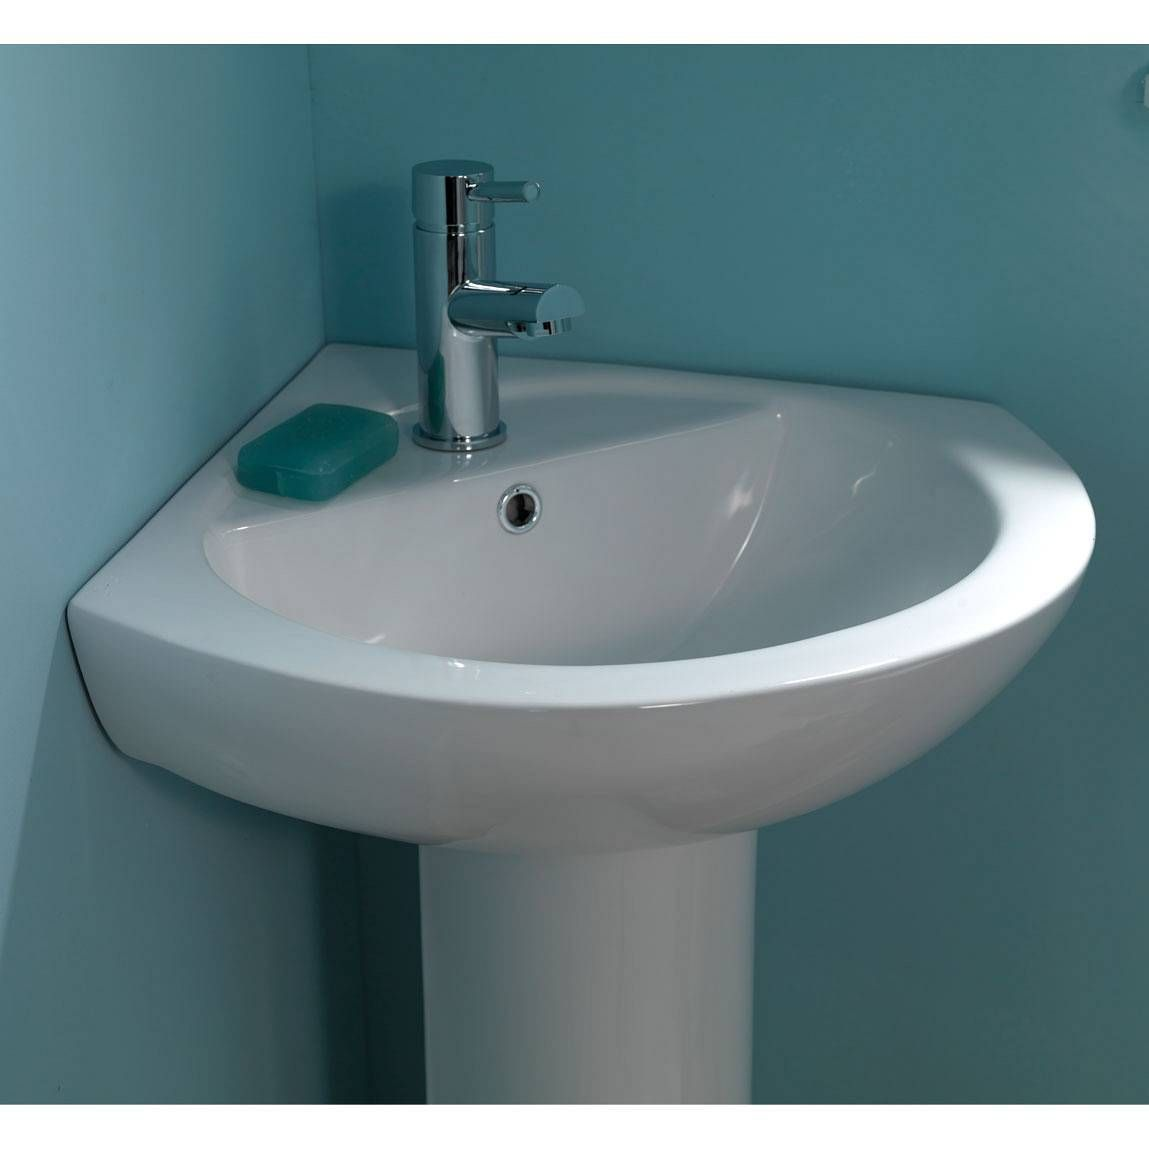 The White Palm Corner Basin Is Simple Stylish And Ideal For Small Uniquely Shaped Bathrooms